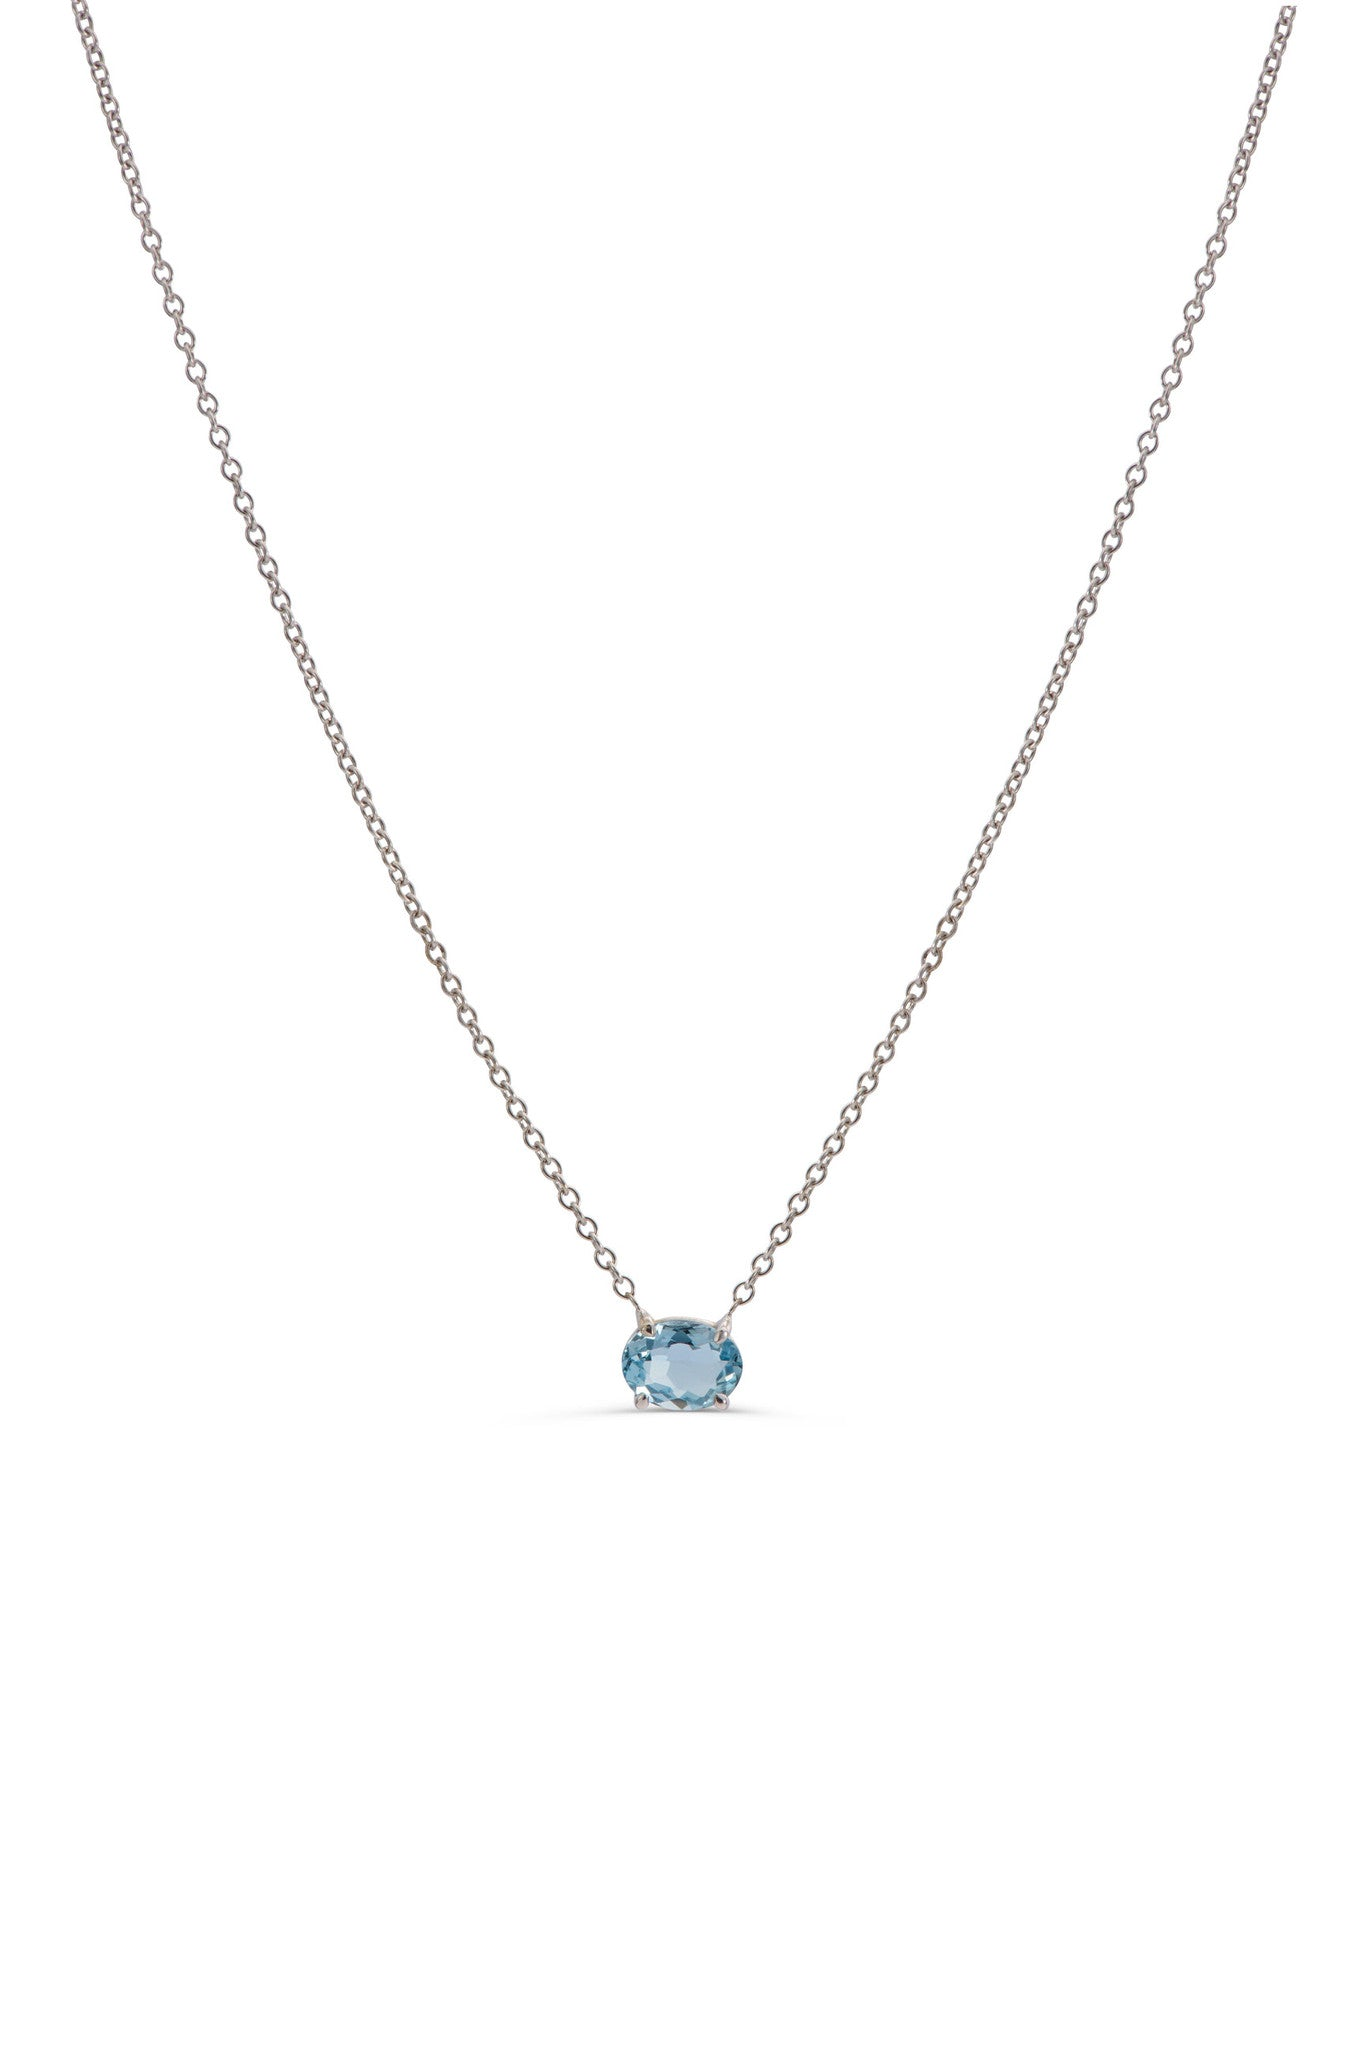 marine aqua birthstone cz silver pendant aquamarine necklace loading necklaces march zoom sterling hiho